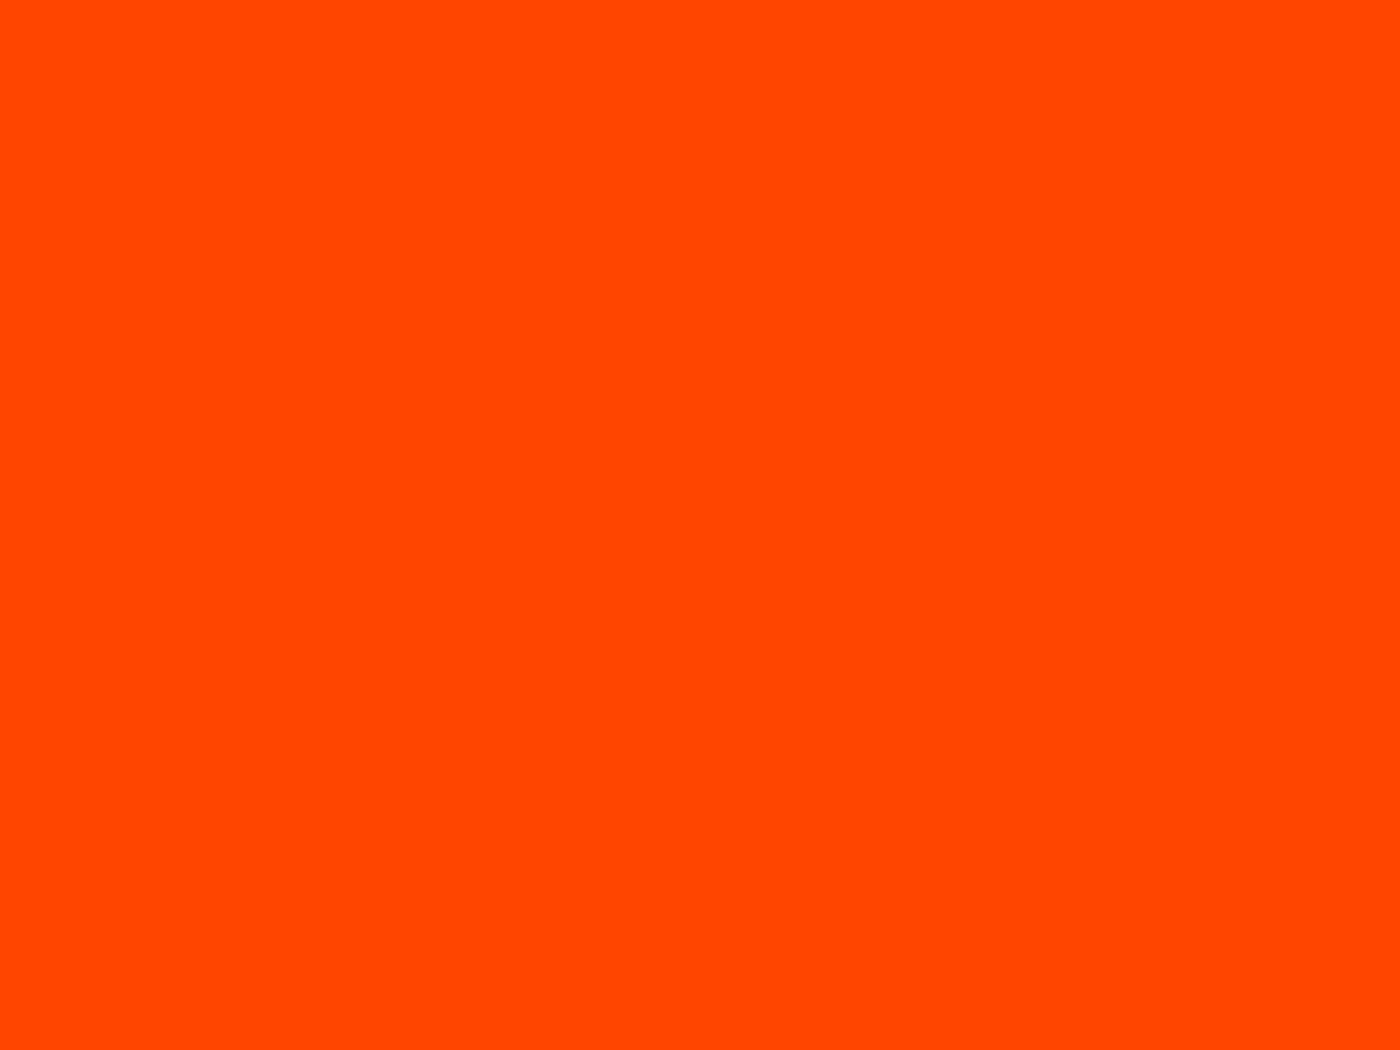 1400x1050 Orange-red Solid Color Background